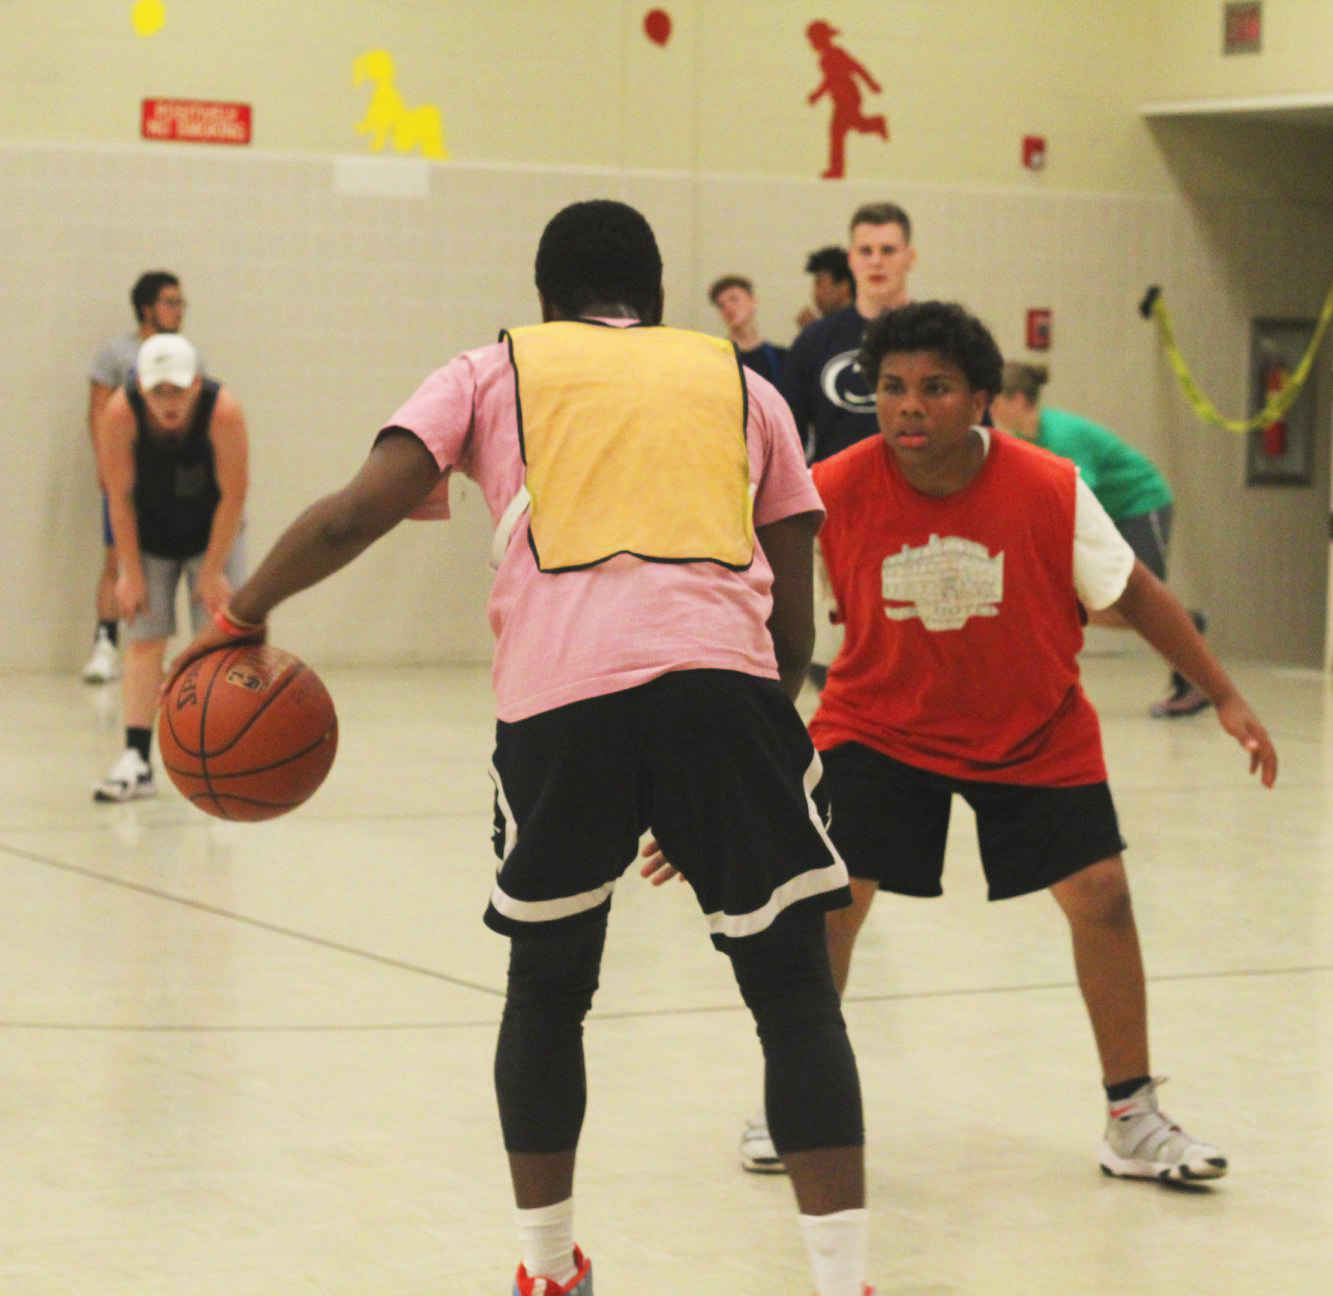 Donate to Provide Our Teen Boys with Exercise and a Healthy, Physical Outlet image